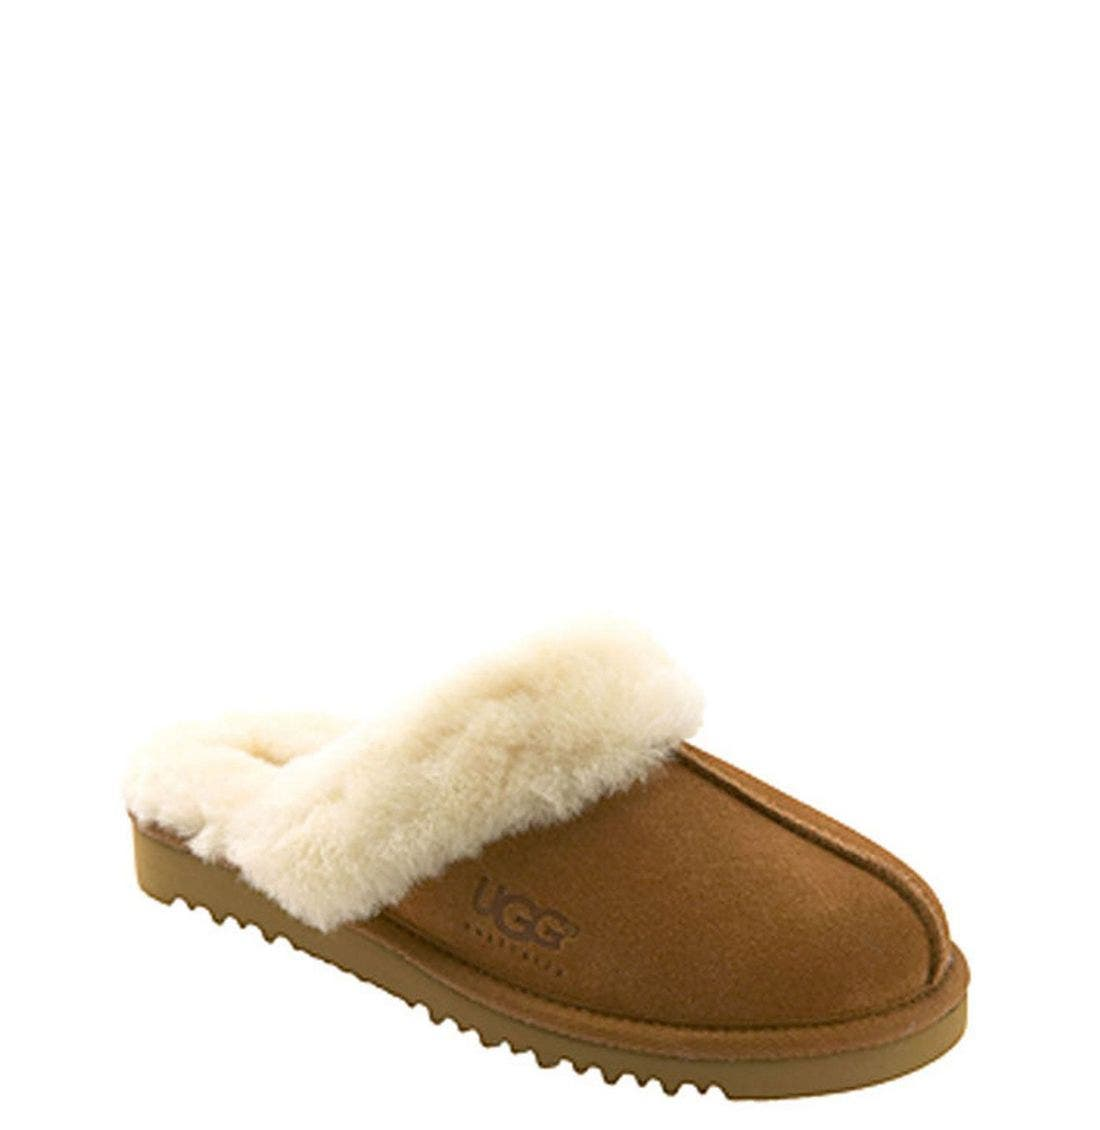 Main Image - UGG® Cozy Scuff Slipper (Toddler, Little Kid & Big Kid)